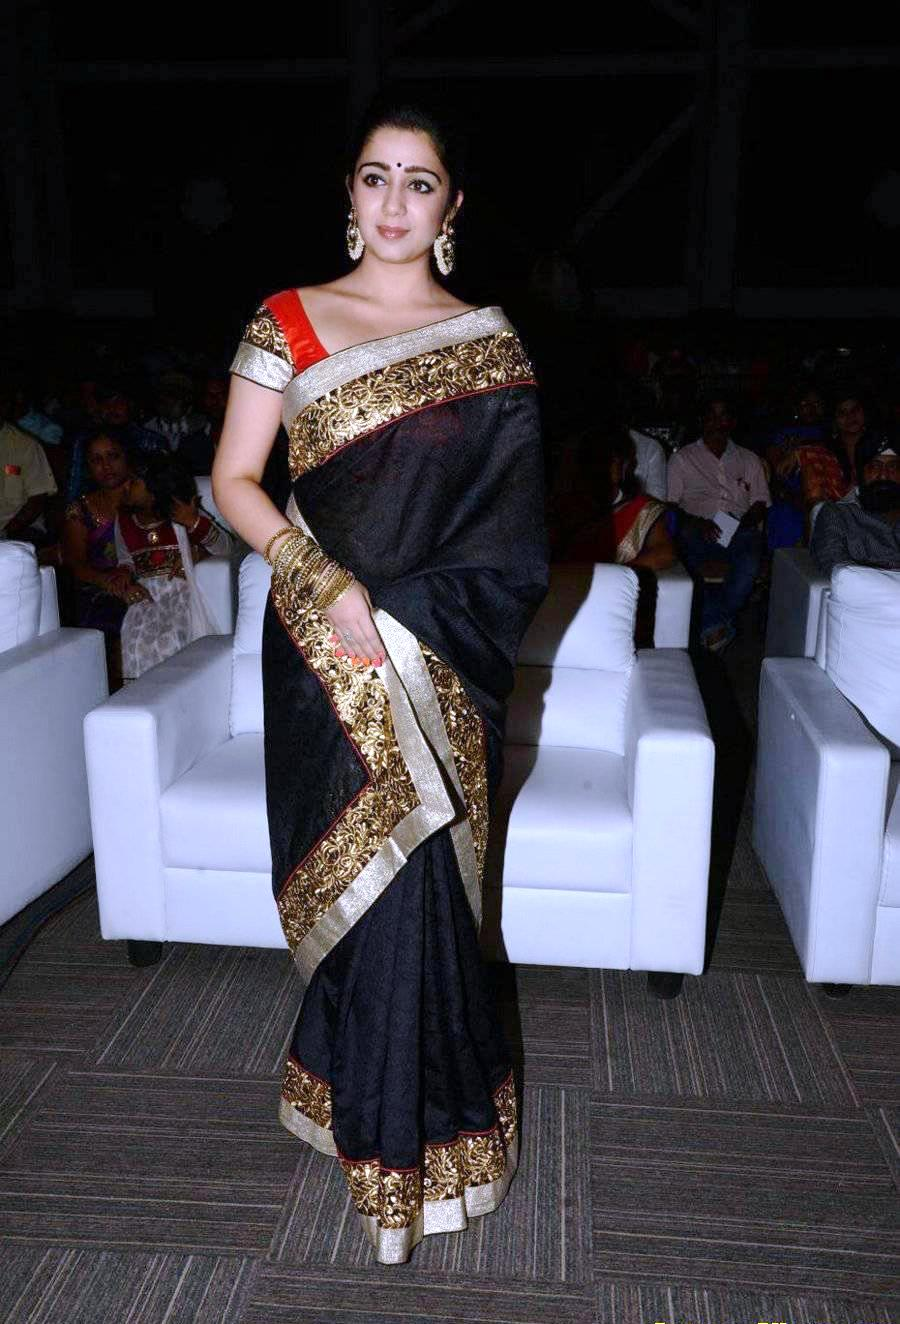 tollywood actress charmy kaur in black saree at audio lunch